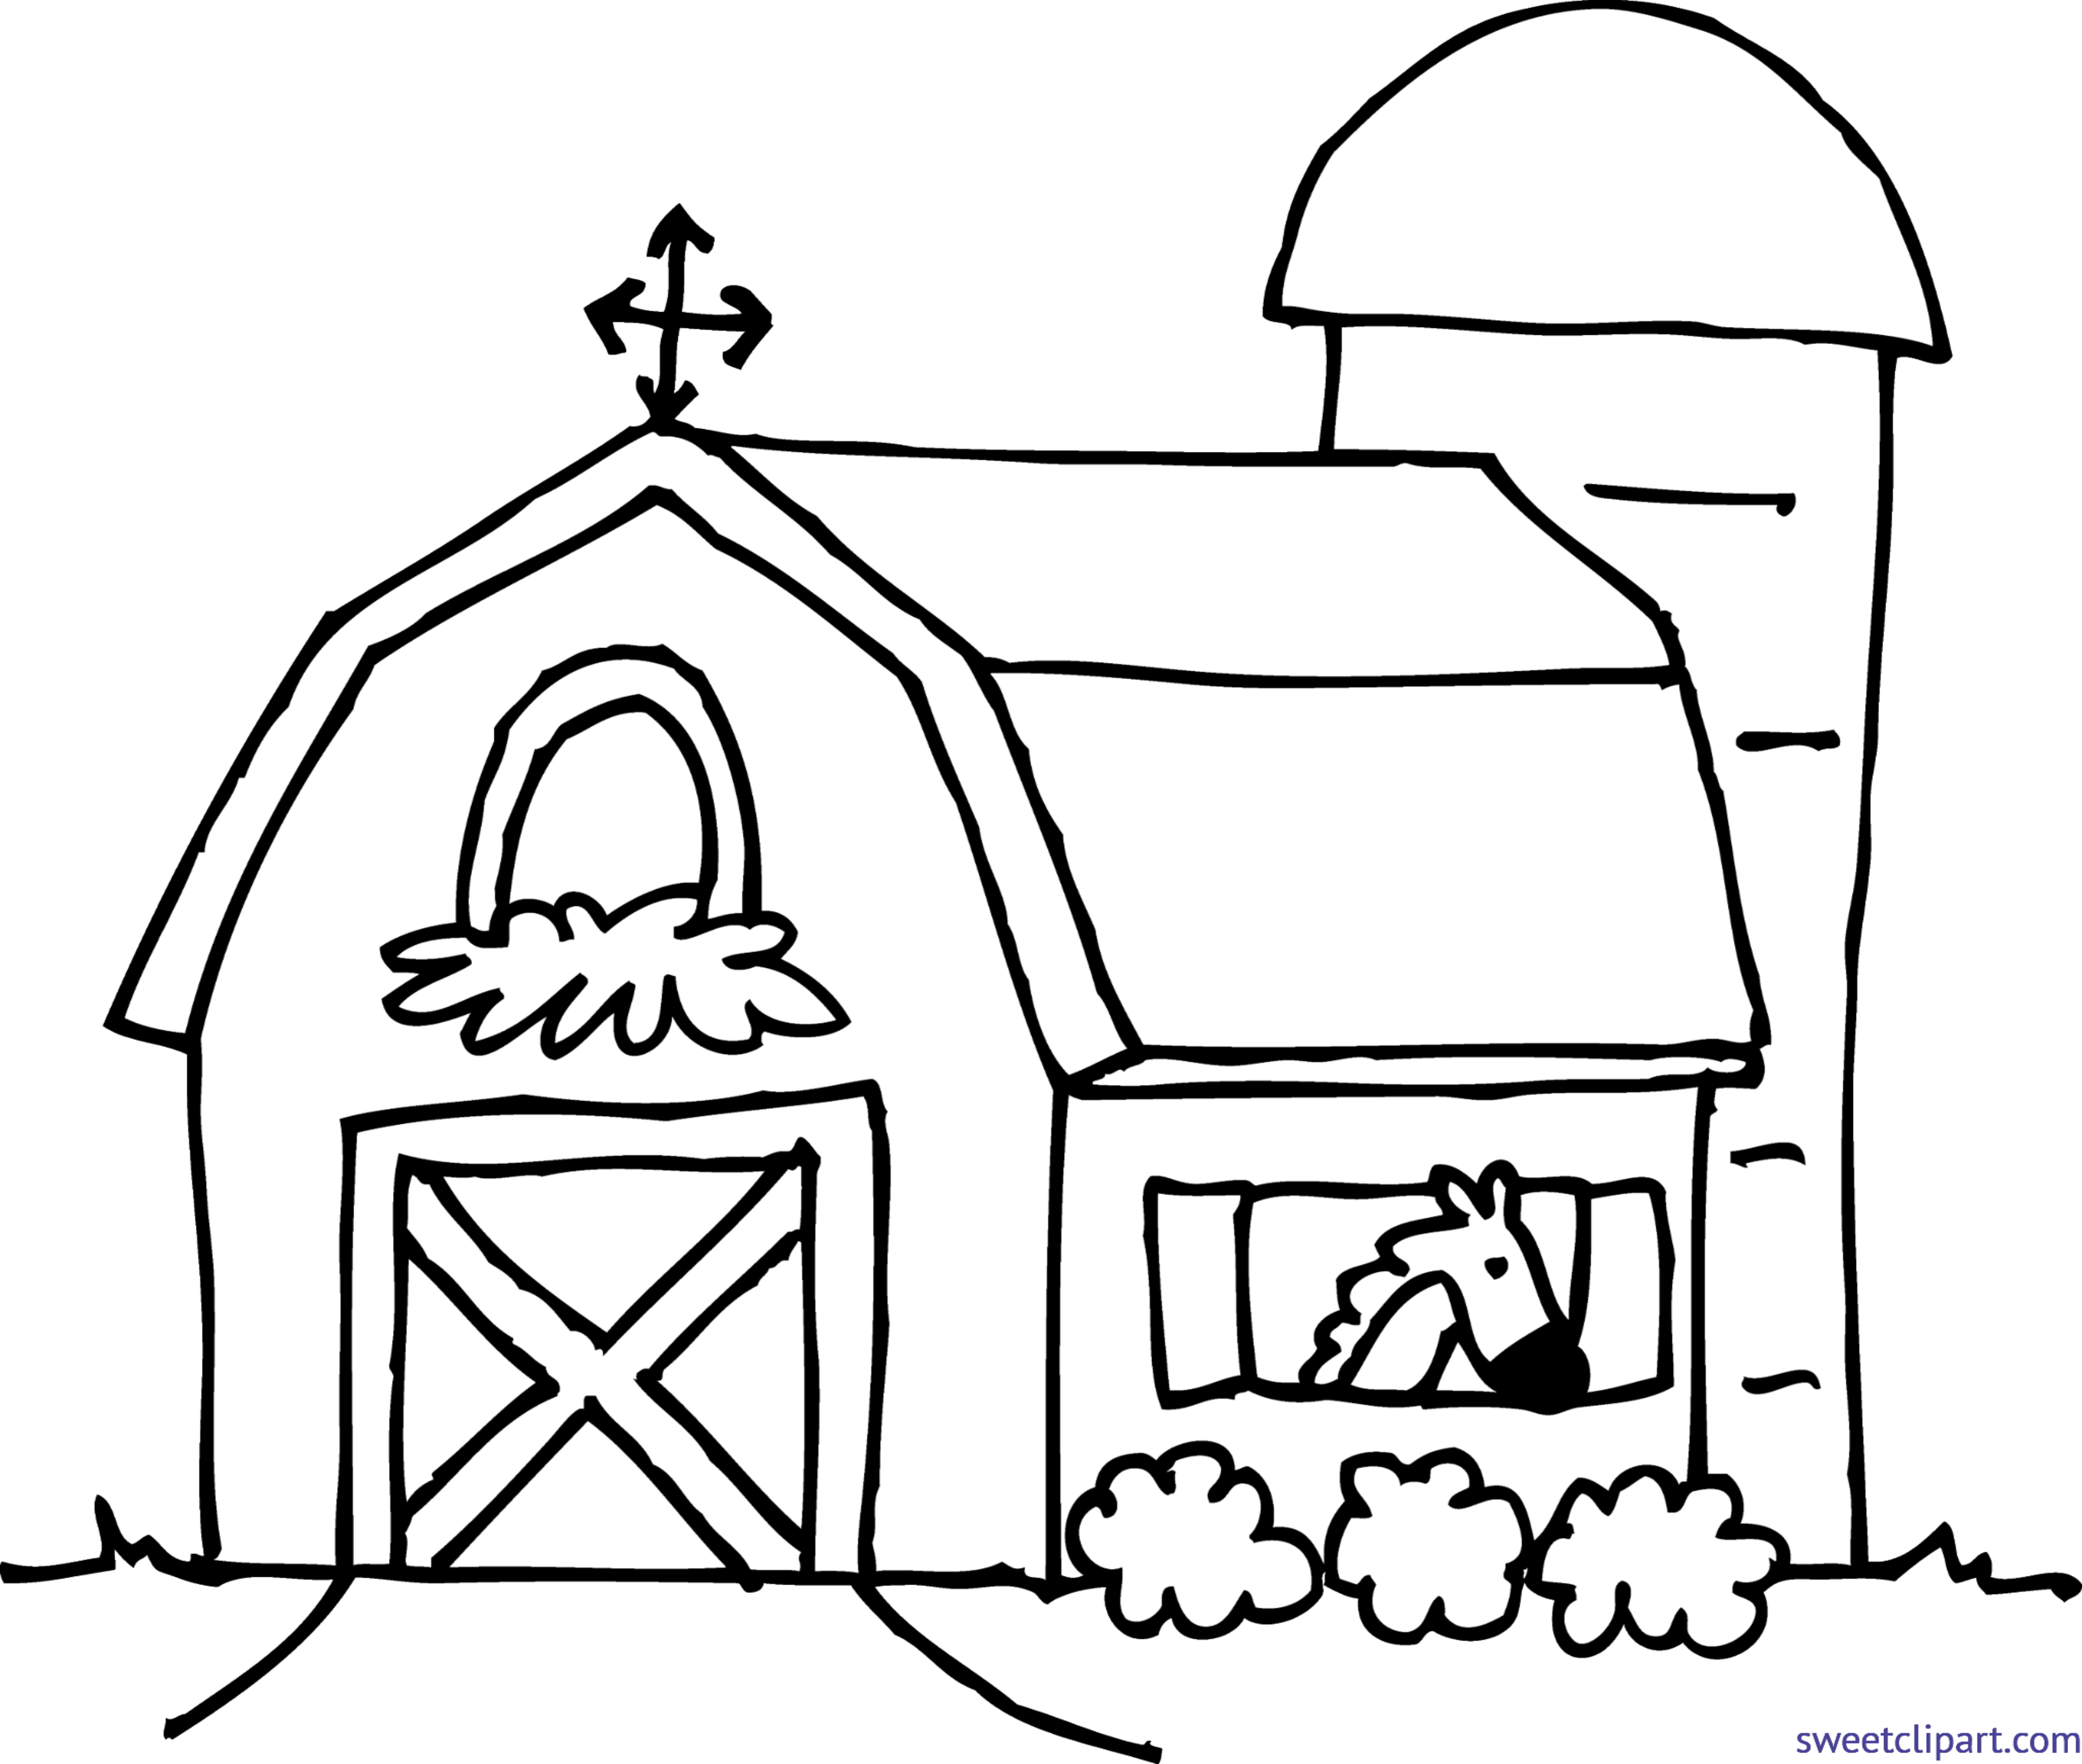 Barn clipart coloring page. Clip art sweet